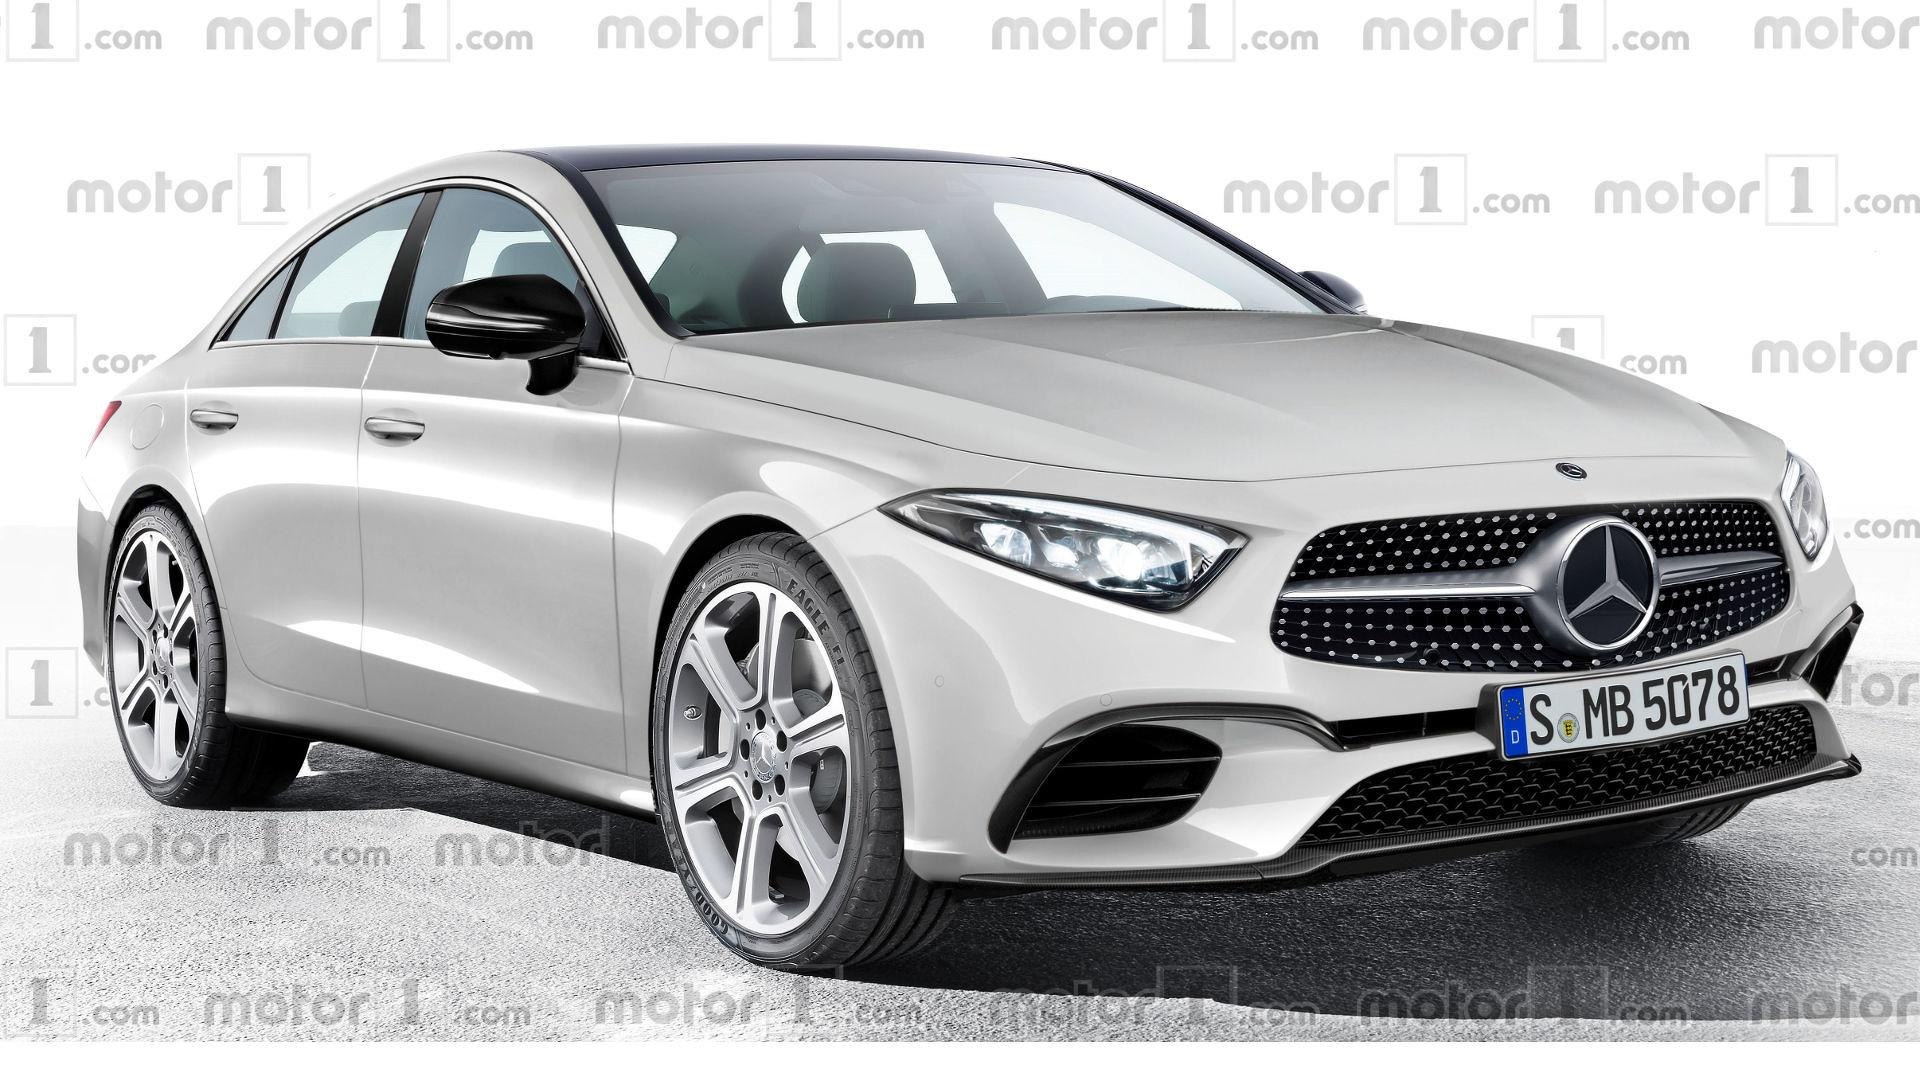 2018 mercedes cls rendering previews evolutionary design. Black Bedroom Furniture Sets. Home Design Ideas